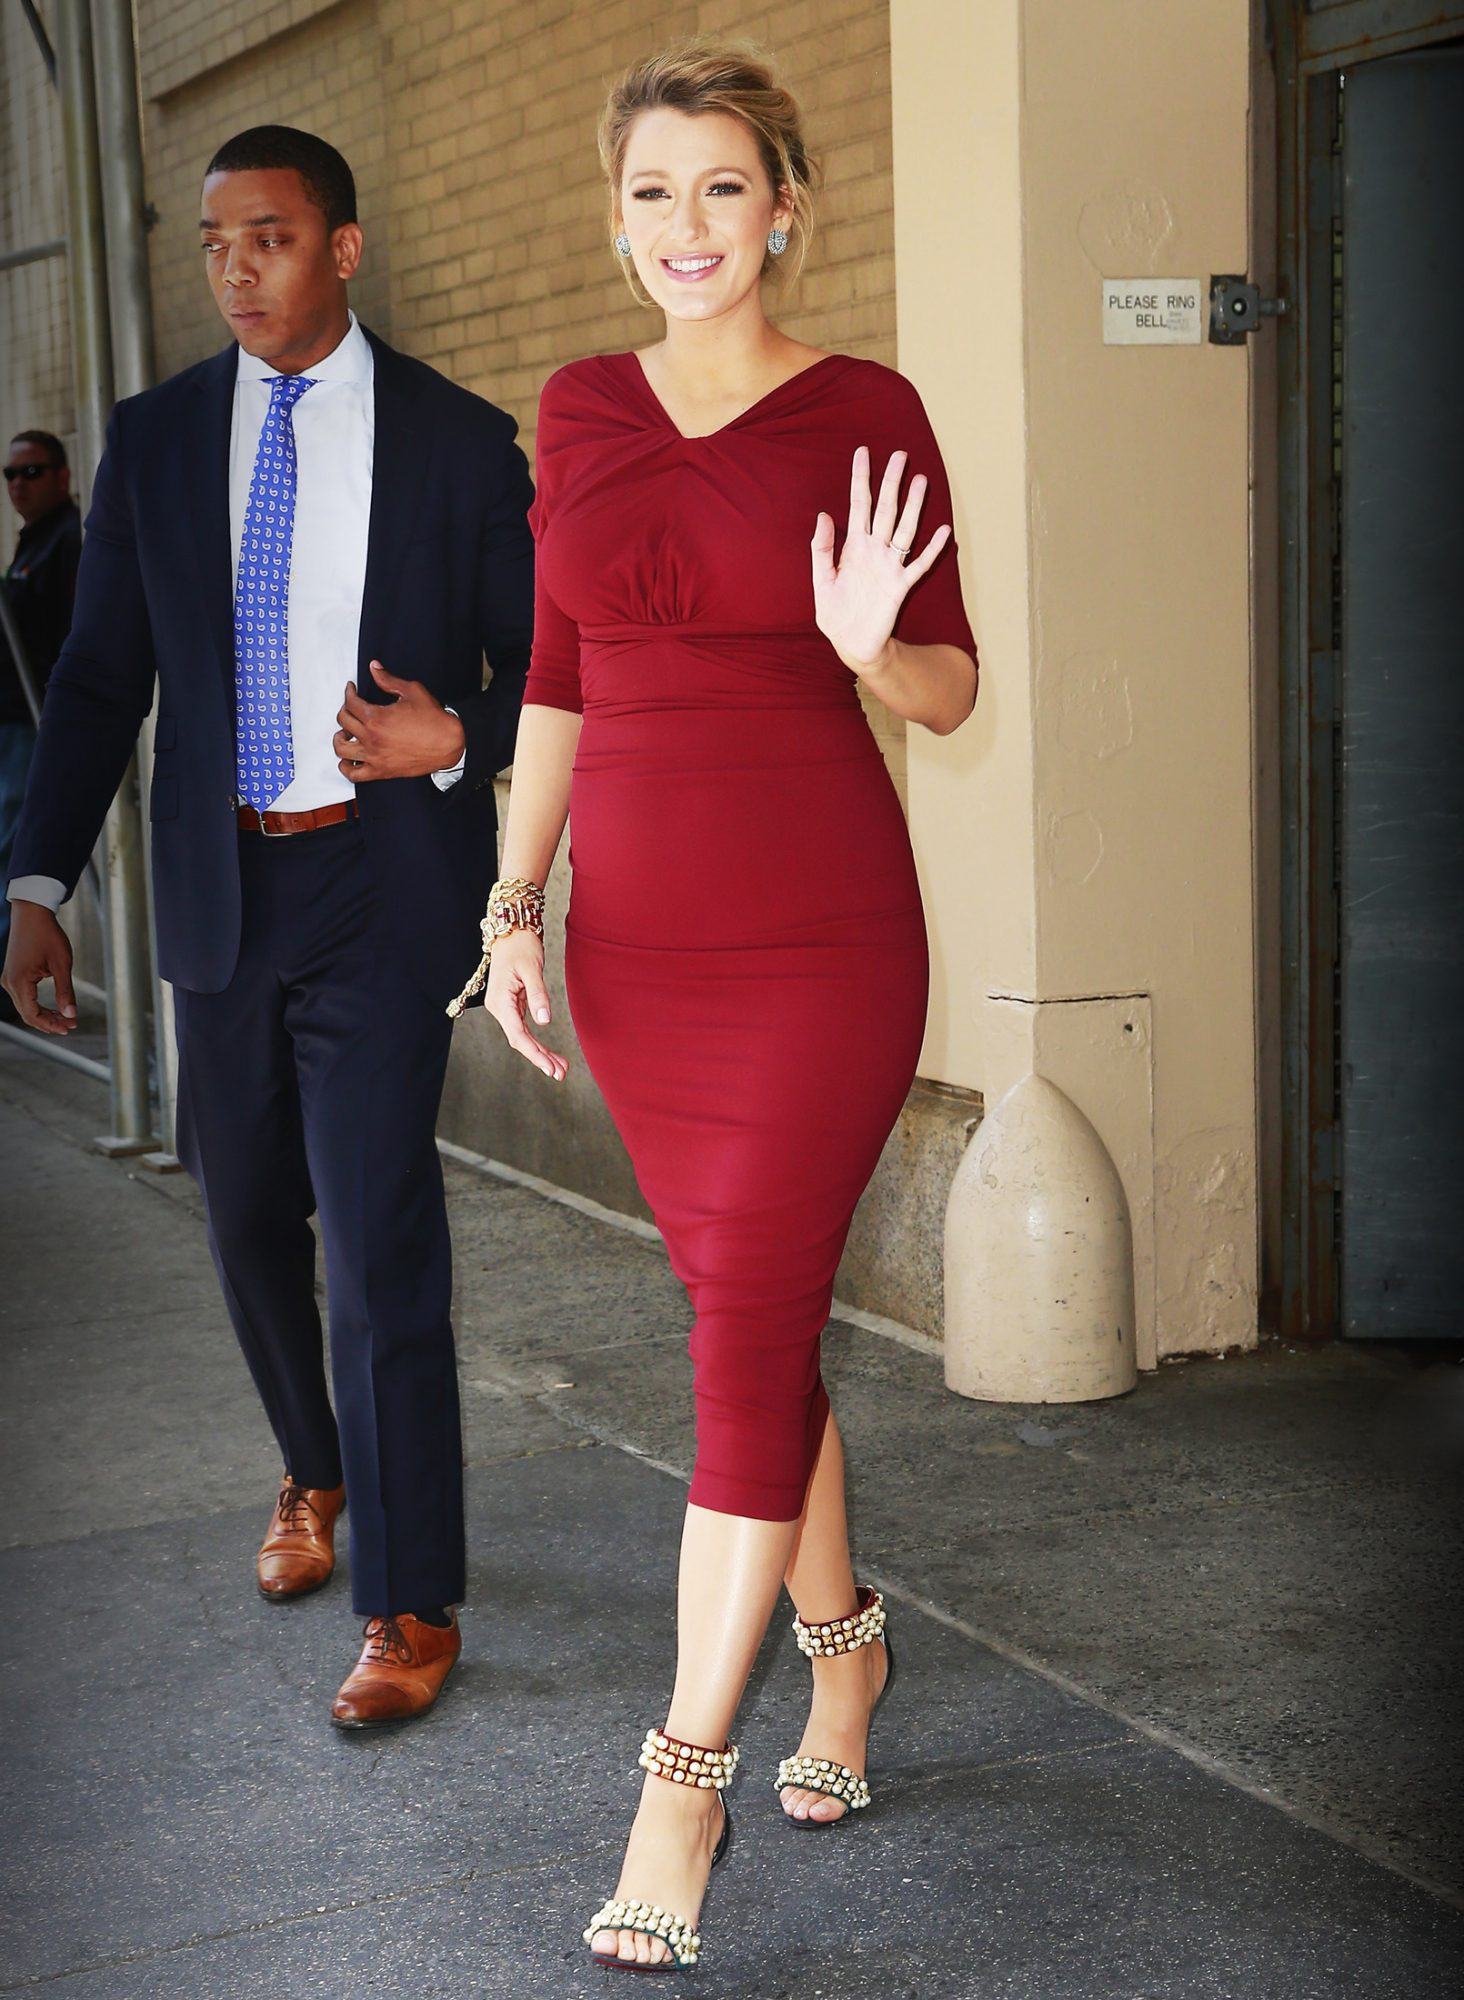 Blake Lively Is a Vision in Red in Her Latest Form-Fitting Maternity Look